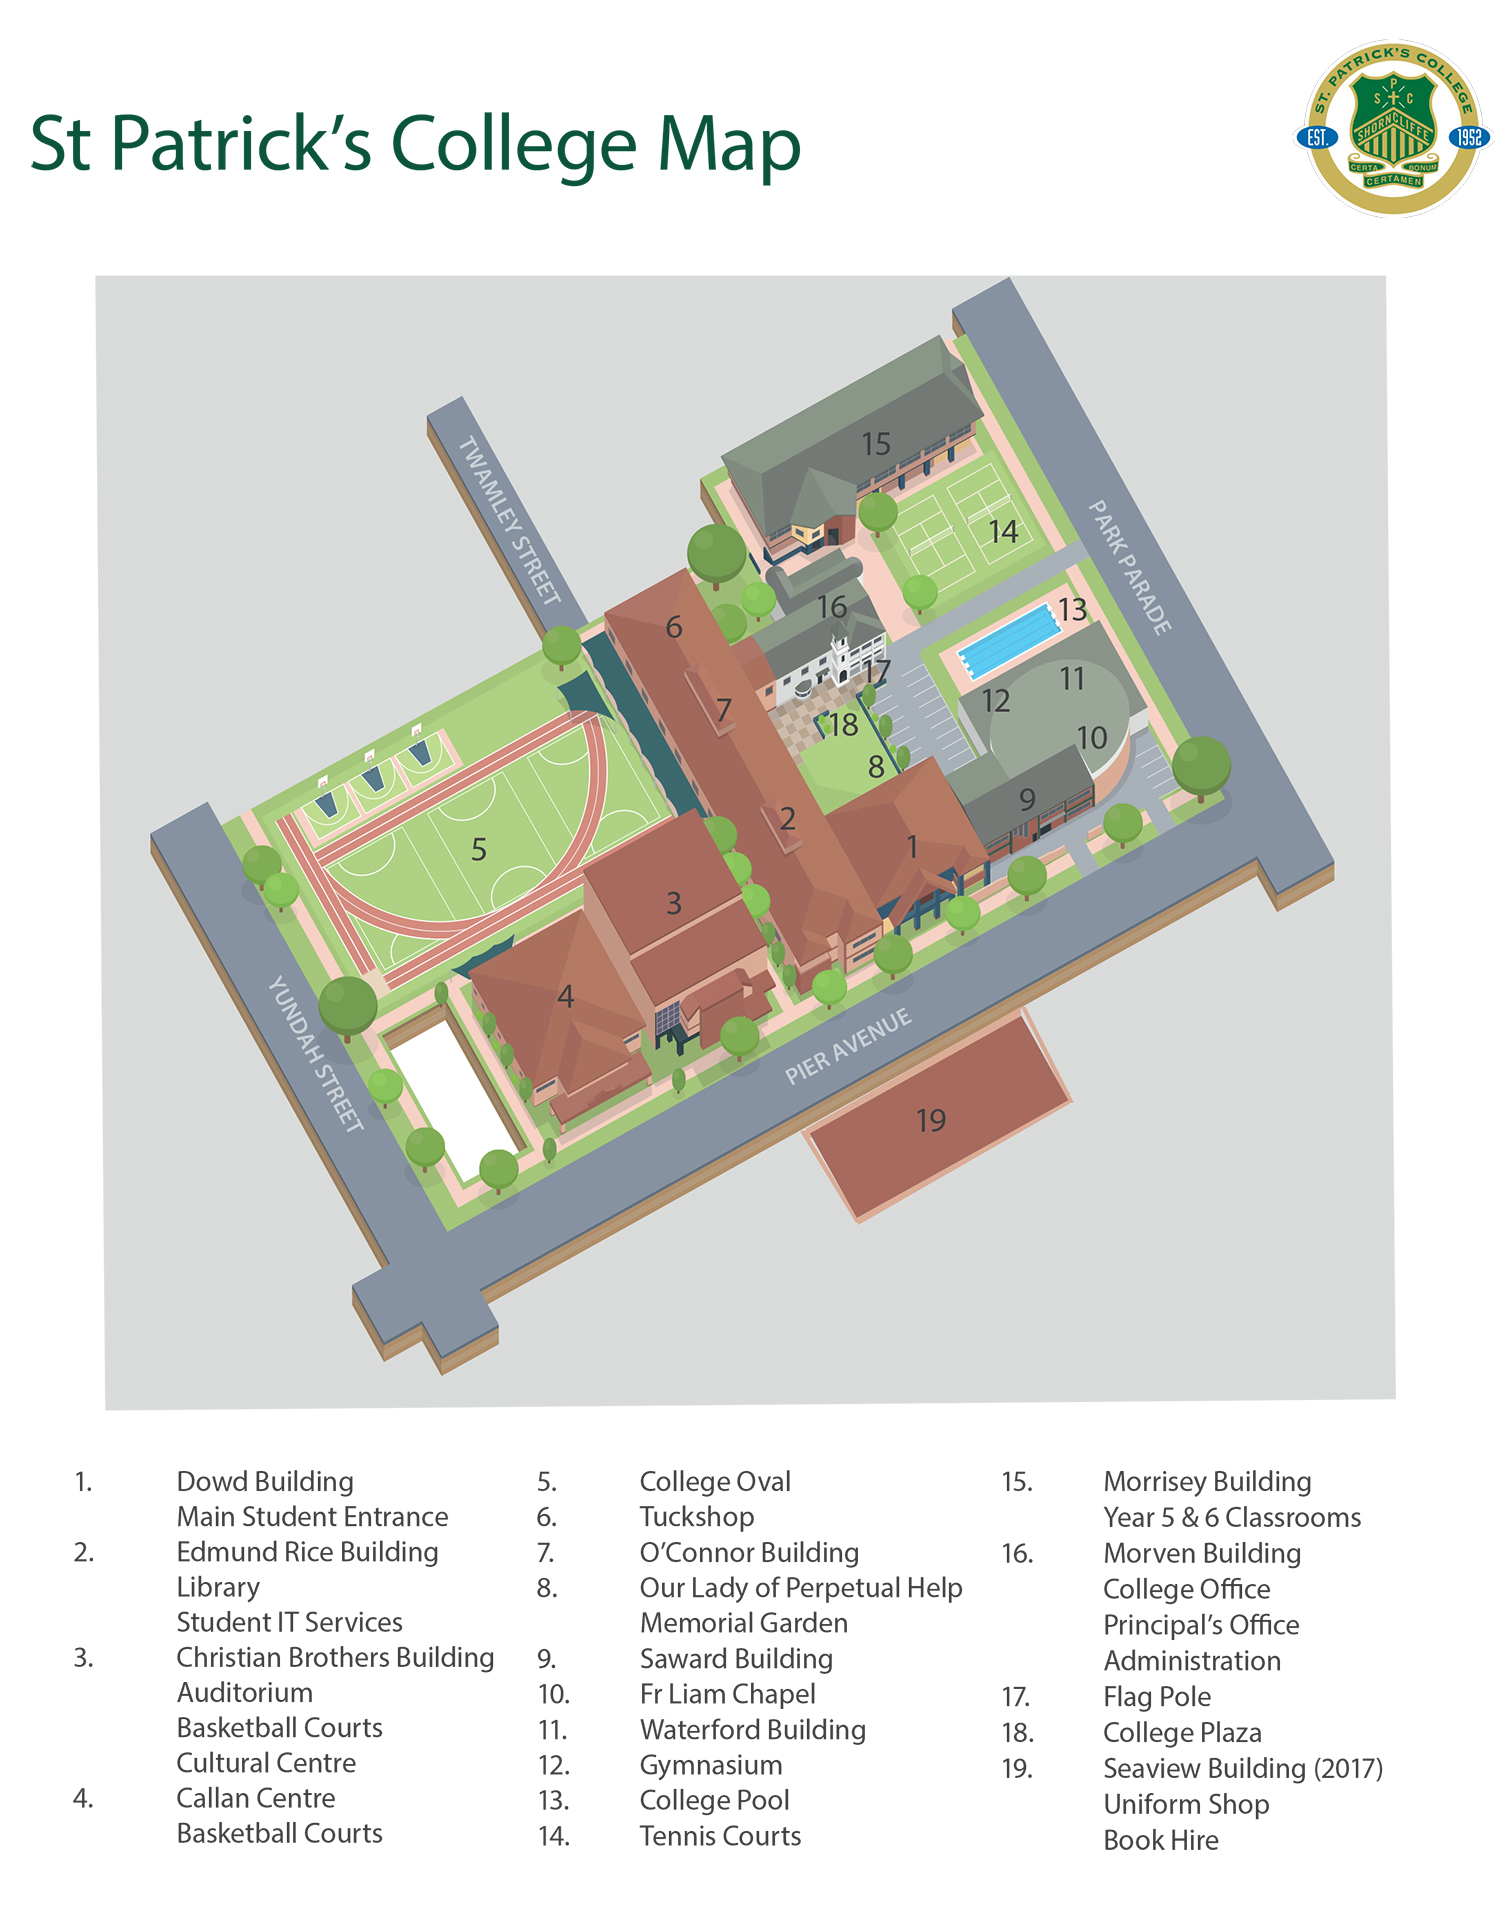 St-Patricks-College-Map_2017_web.jpg?mti